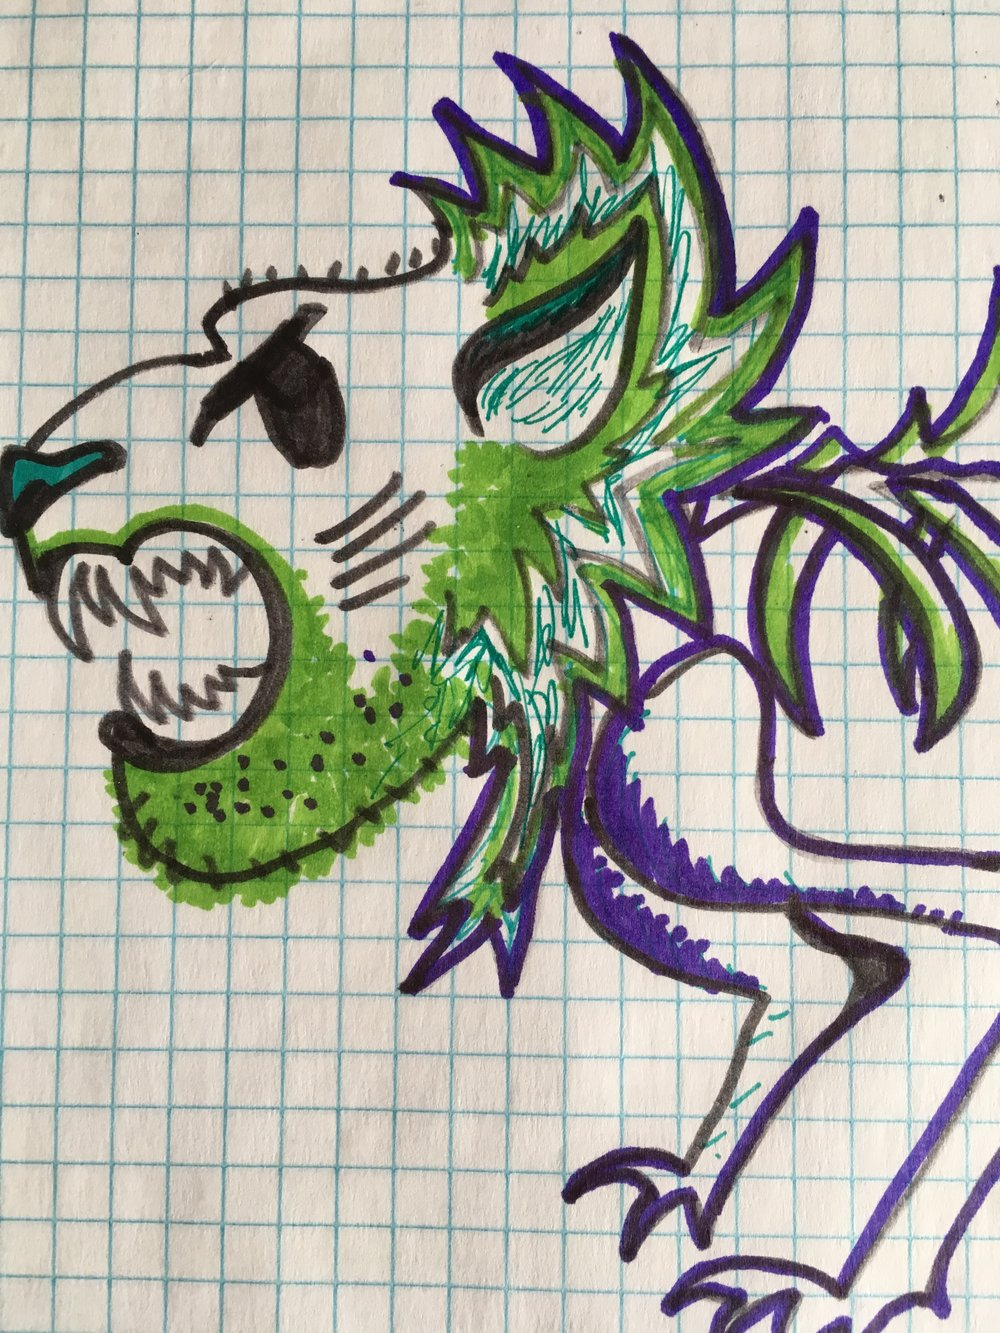 I also have this fun one I did with sharpies on graph paper. Looks like it has a green beard lol